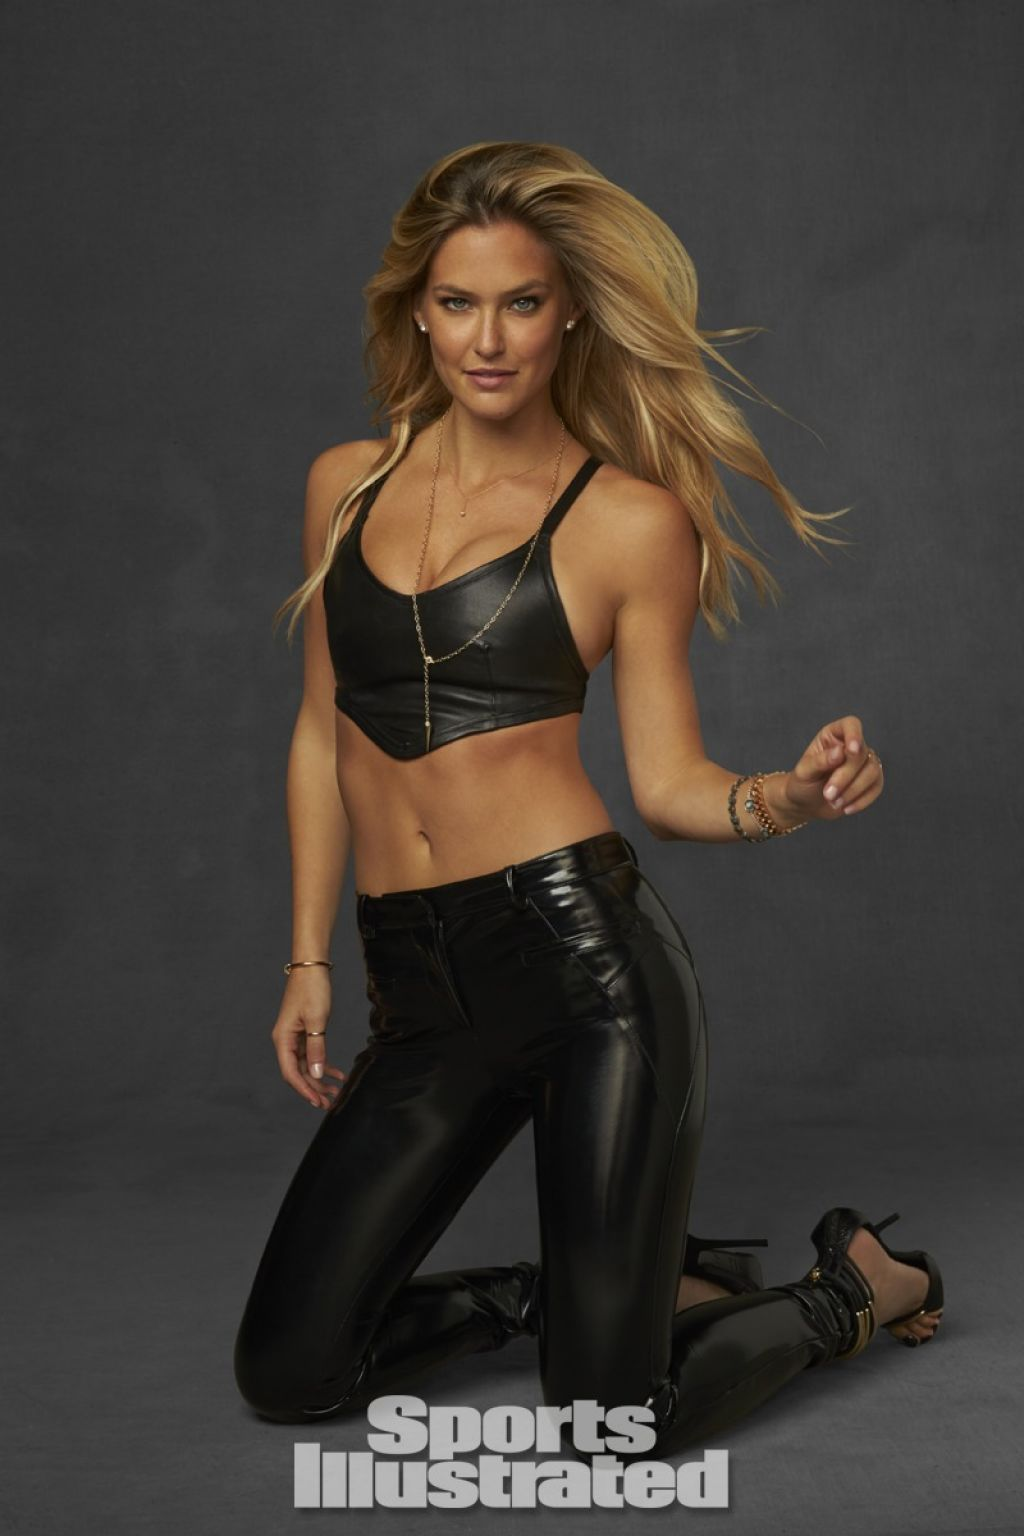 Bar Refaeli - Sports Illustrated 2014 Legends